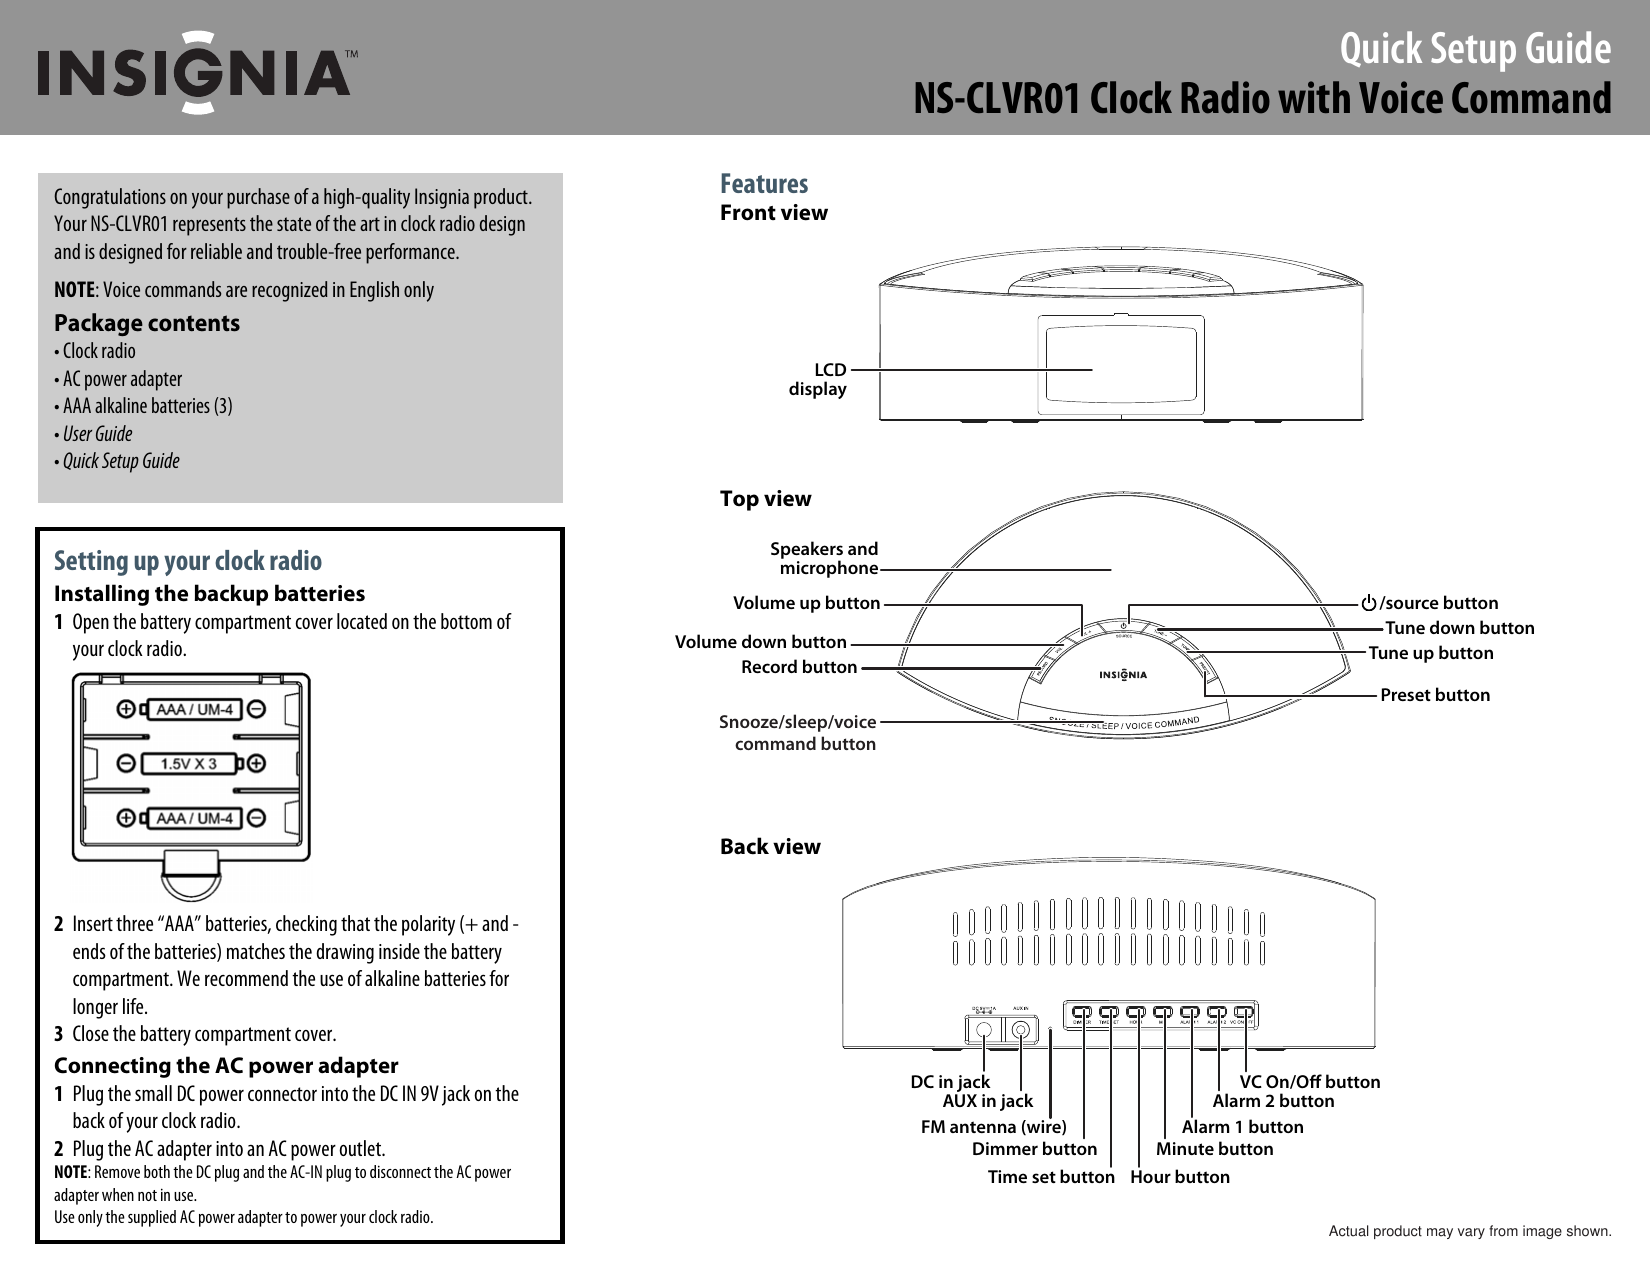 Insignia Ns Clvr01 Users Manual 10 0131 Qsg V2 En Up Down Timer For A Power Antenna